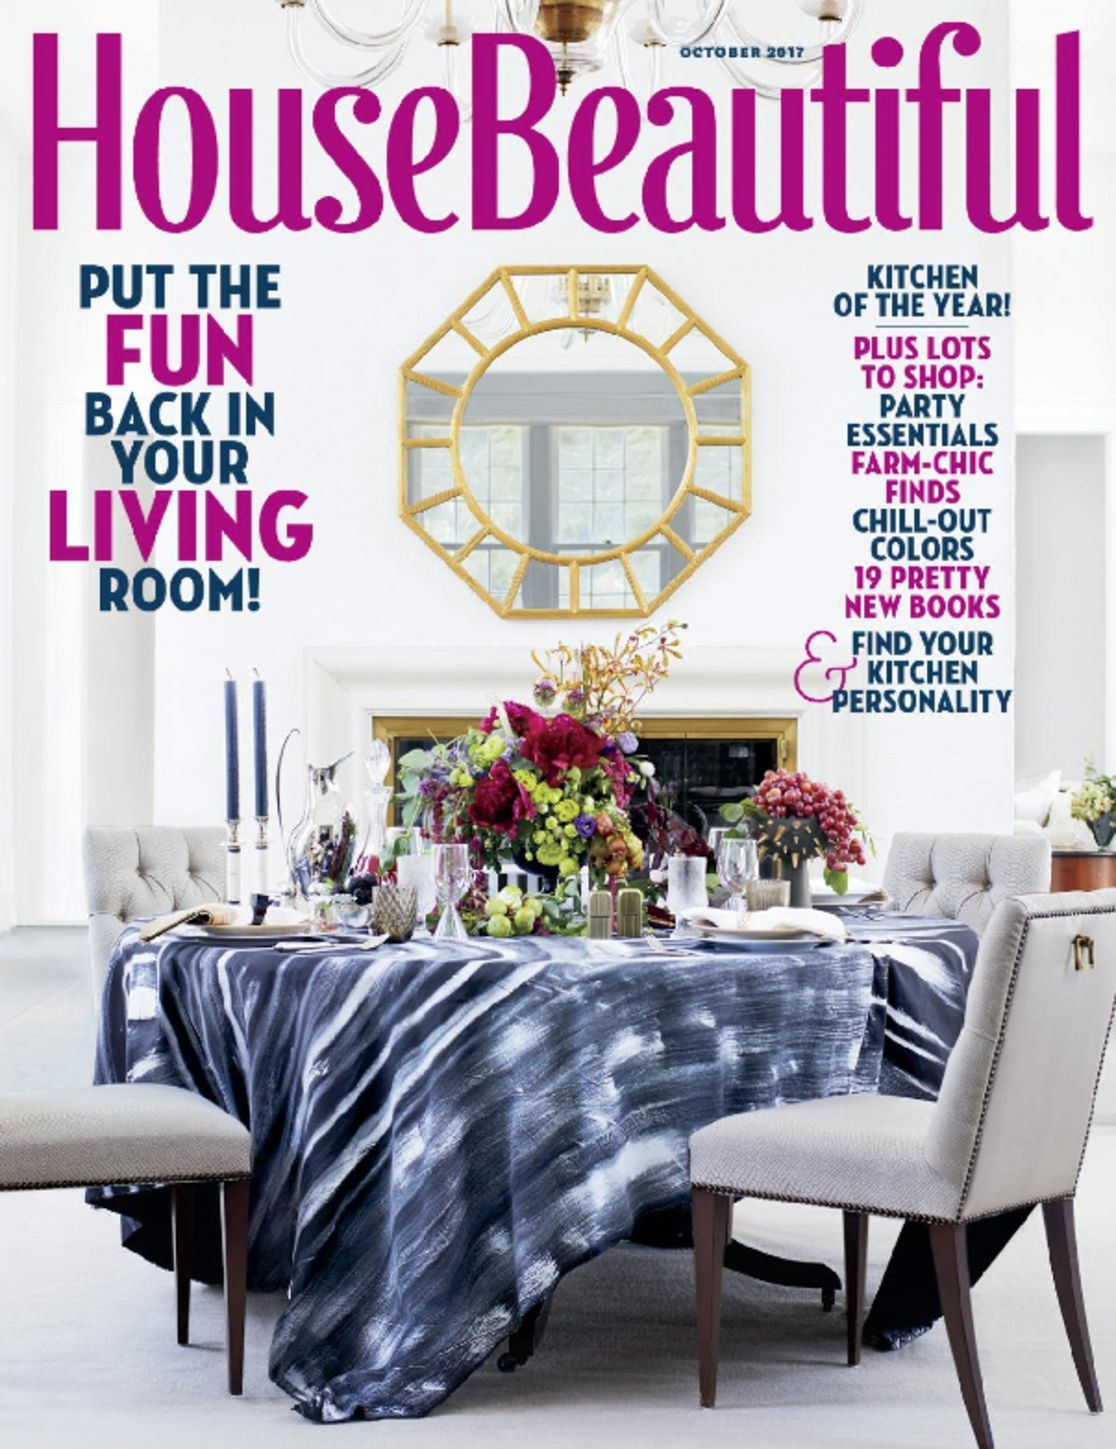 House Beautiful Magazine House Beautiful Magazine  For A Beautiful Home  Discountmags